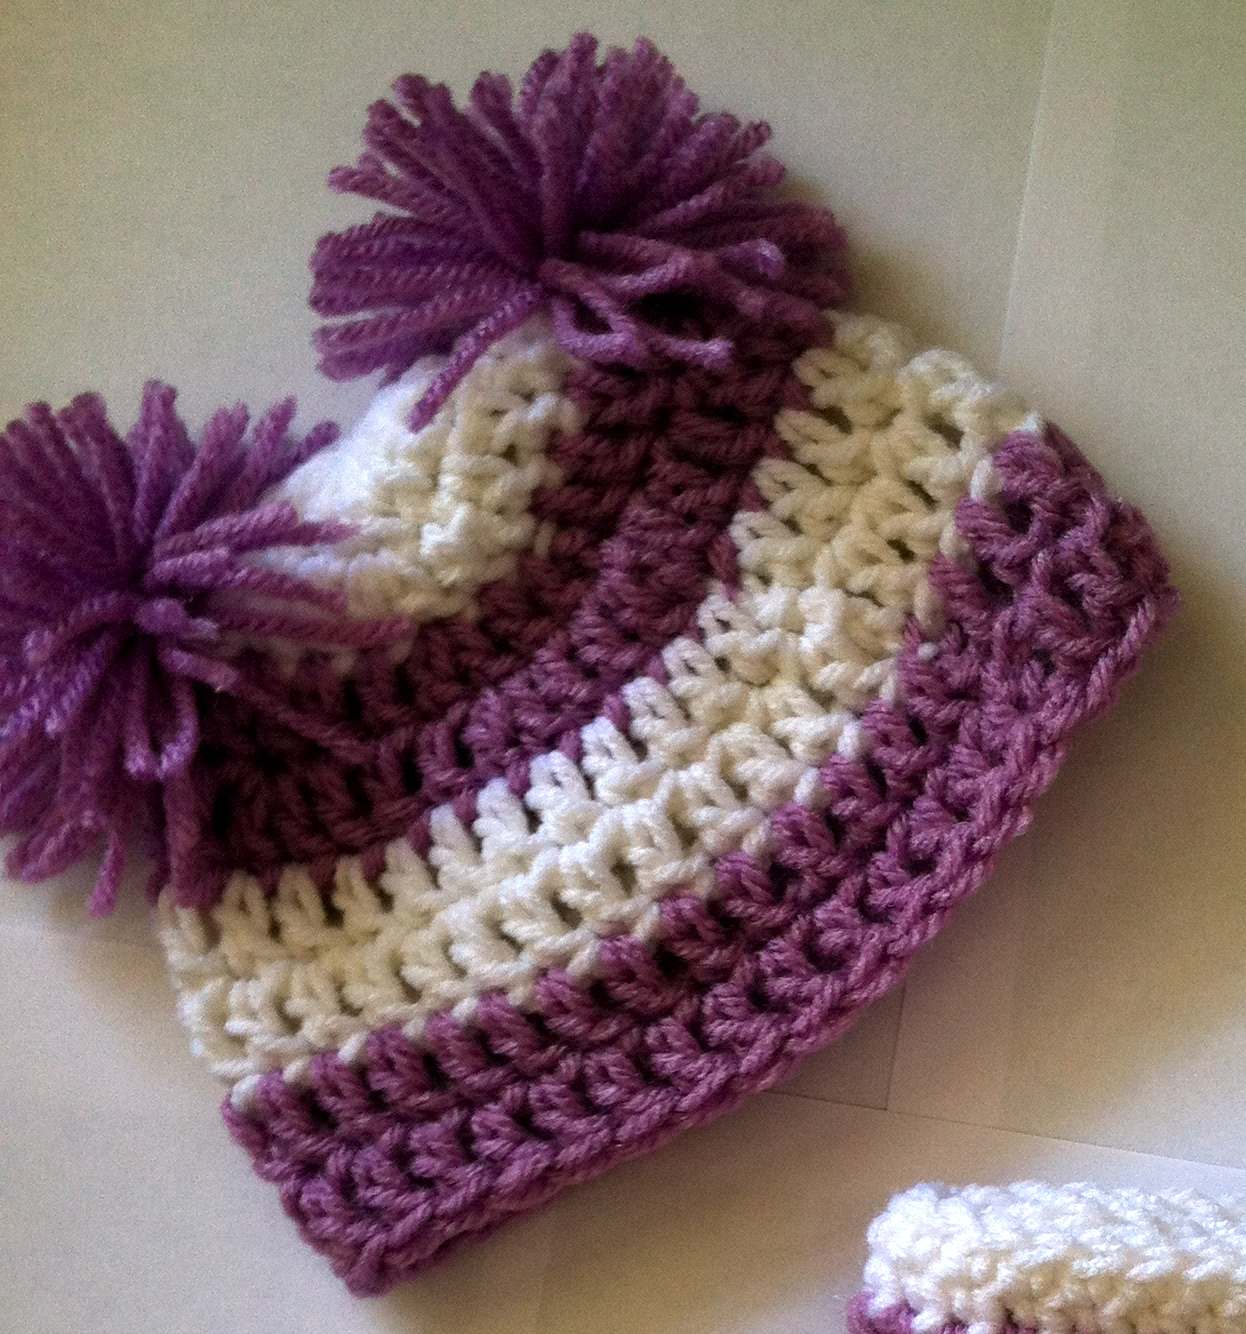 Crochet Beanie Pattern J Hook : Basic Beanie Free Crochet Pattern ? Family Bugs Blogging